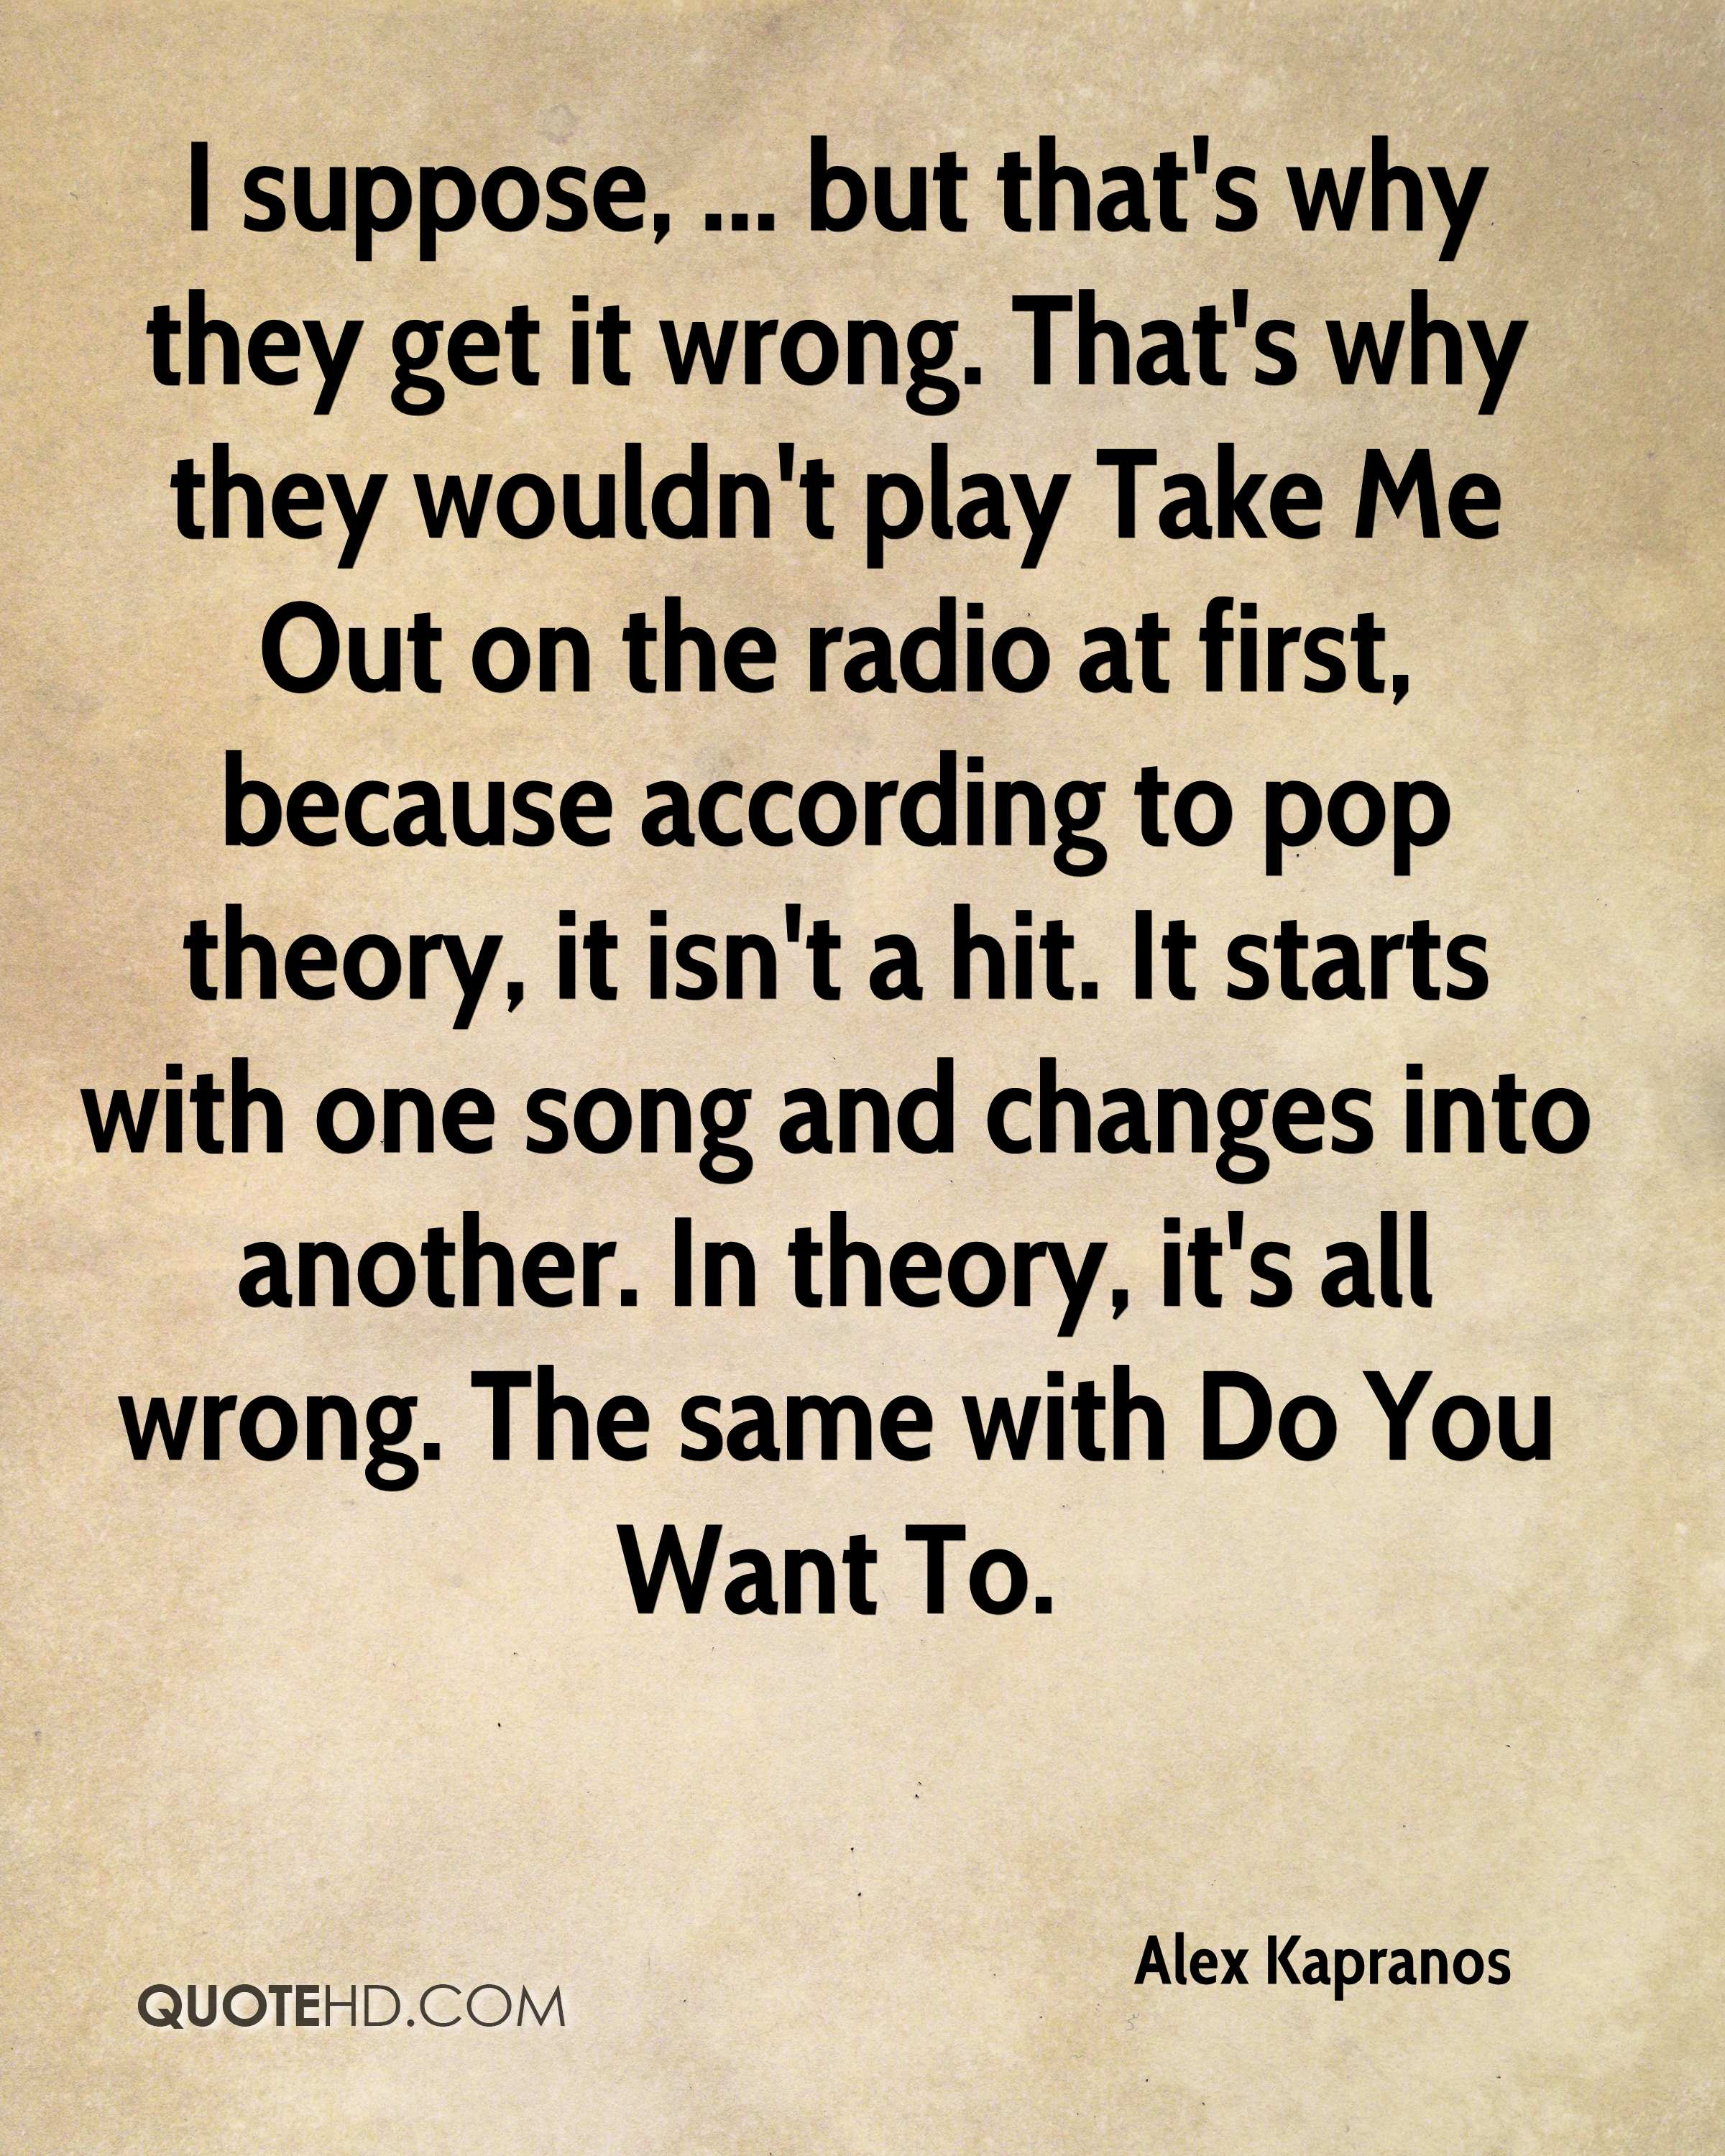 I suppose, ... but that's why they get it wrong. That's why they wouldn't play Take Me Out on the radio at first, because according to pop theory, it isn't a hit. It starts with one song and changes into another. In theory, it's all wrong. The same with Do You Want To.